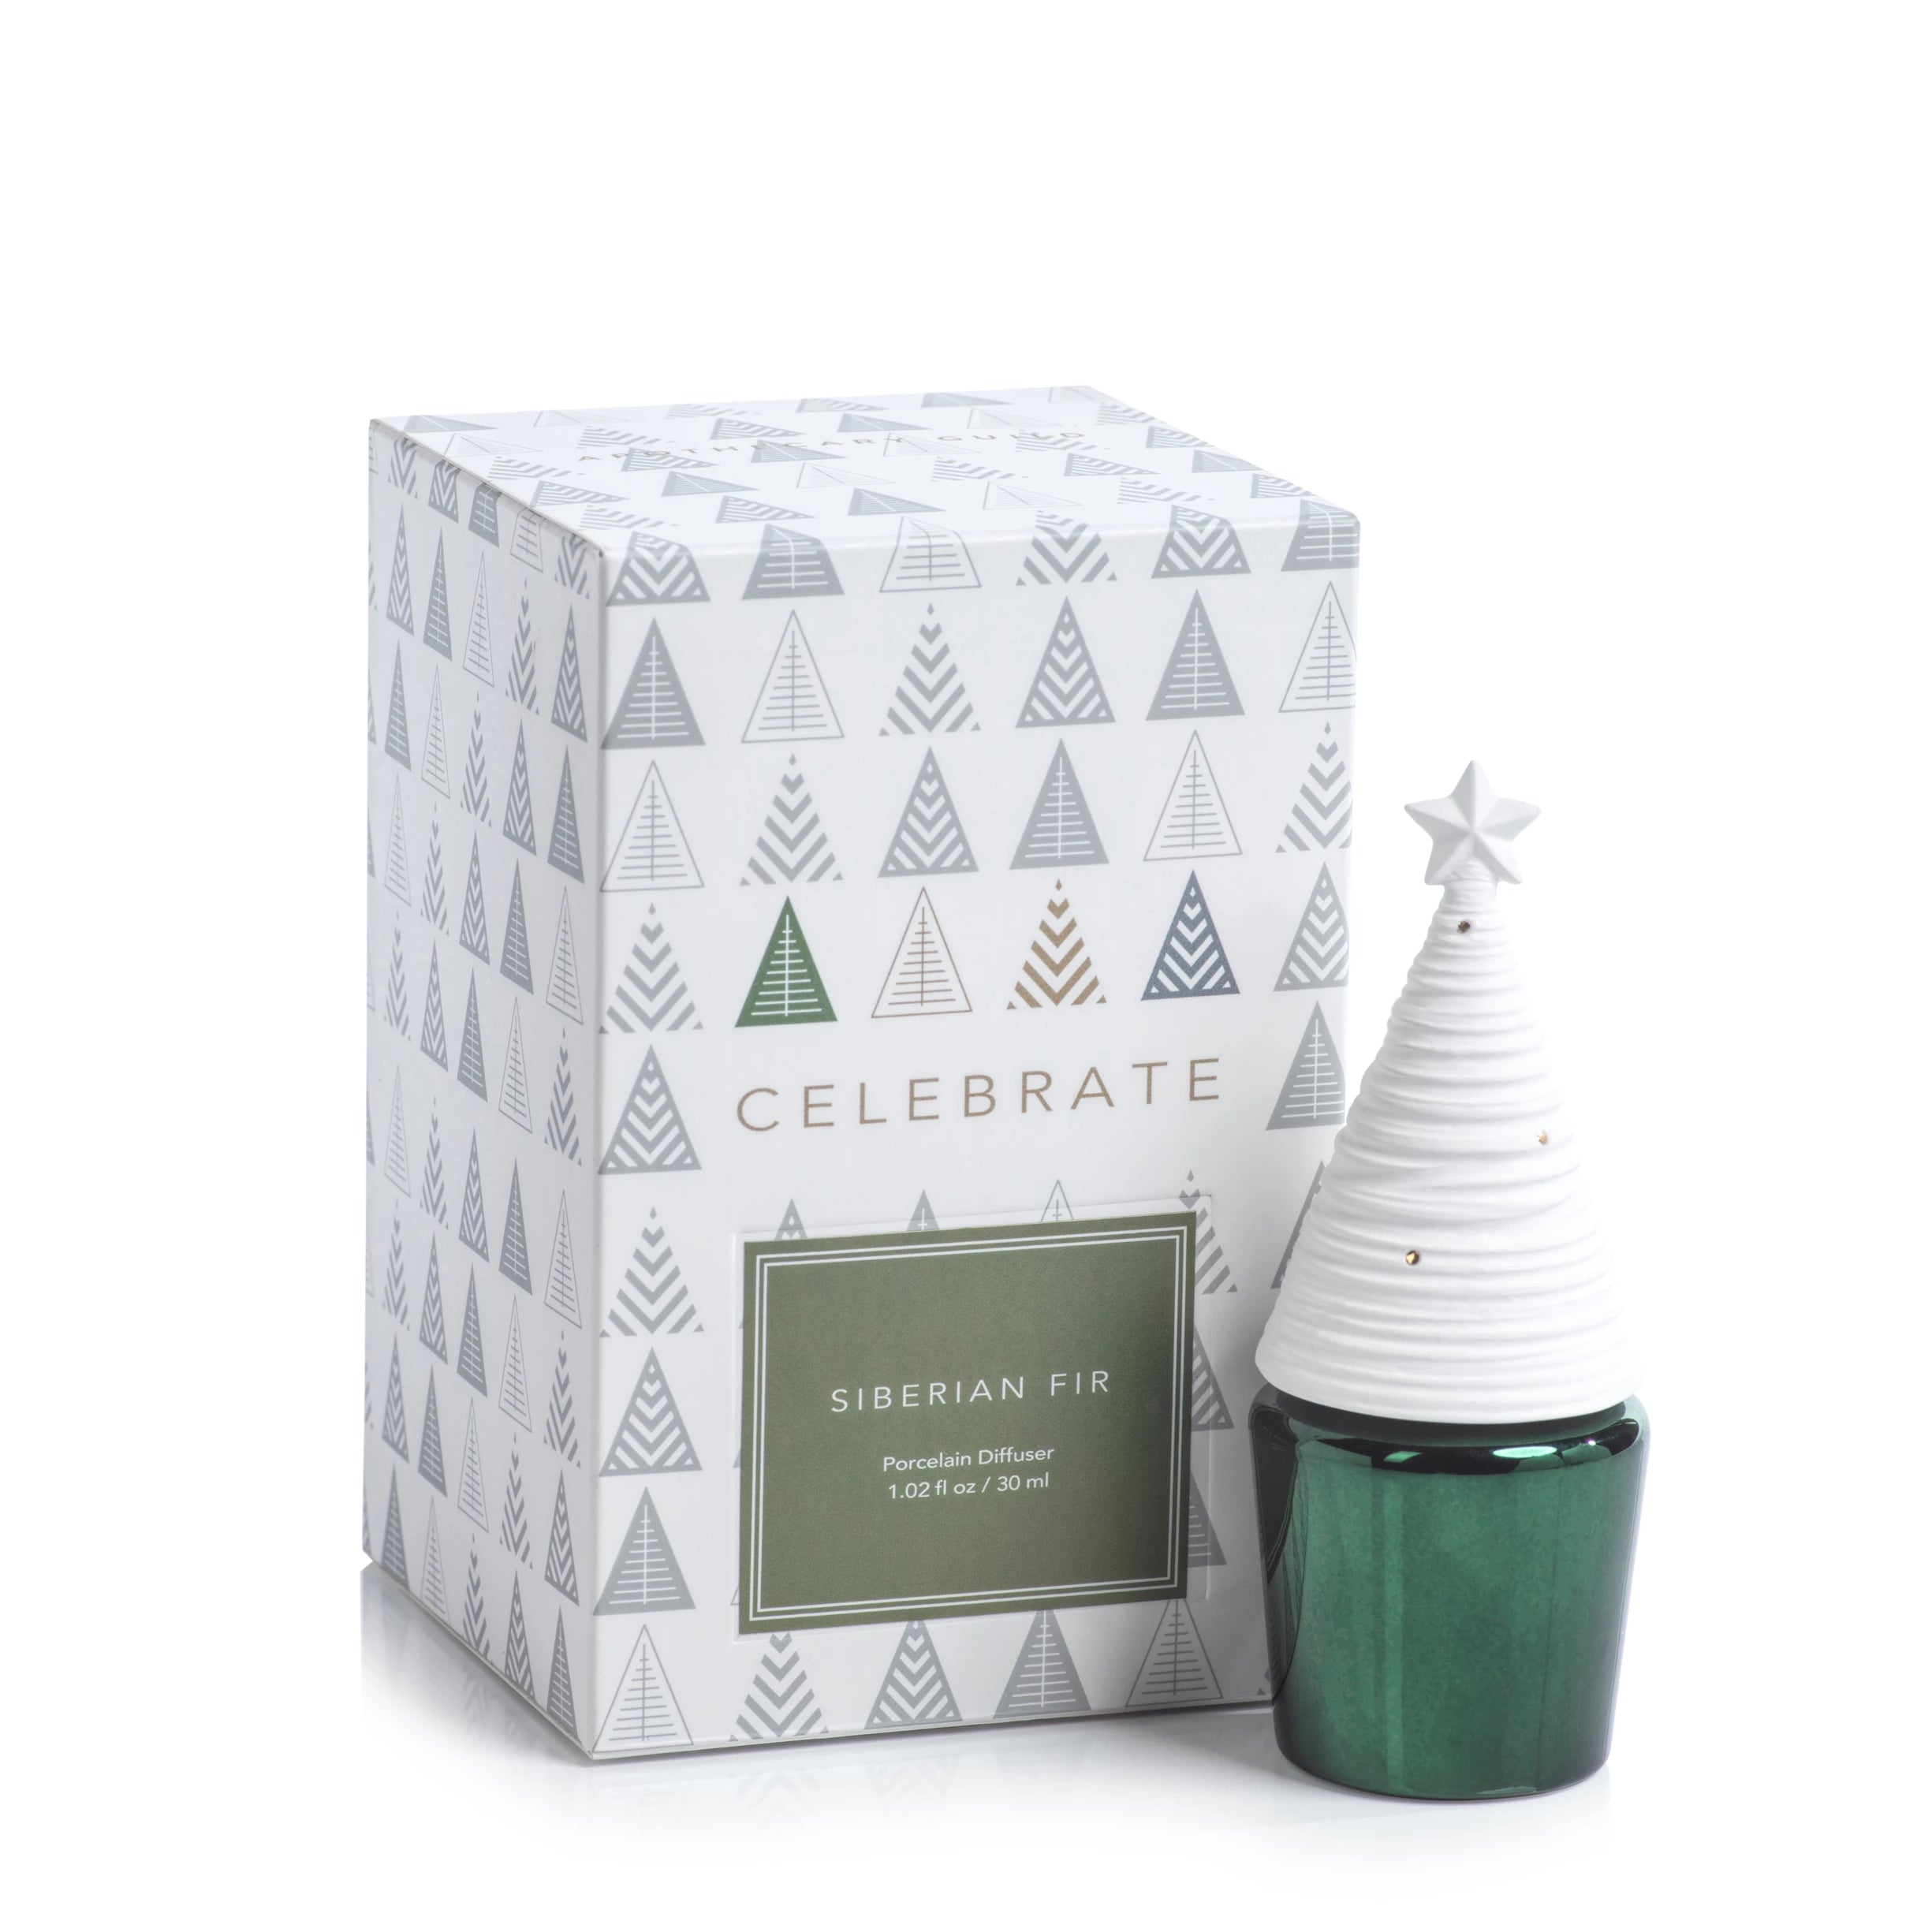 Celebrate Mini Tree Diffuser - Siberian Fir - CARLYLE AVENUE